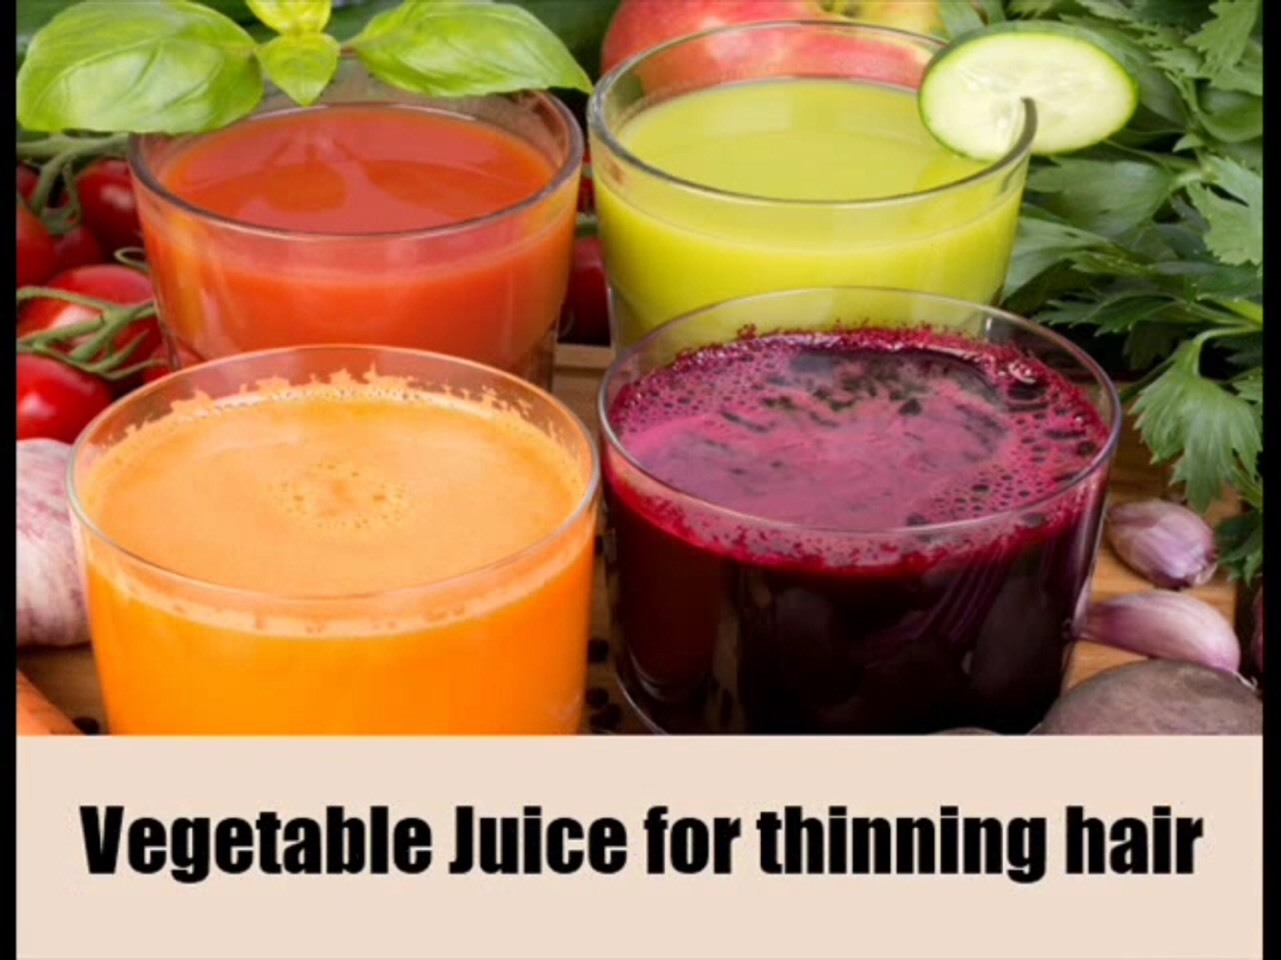 Consumption of a mixture of carrot, lettuce & capsicum juice is one of the most effective remedies for thinning hair. An individual can also drink a mixture of fresh alfalfa and spinach juice to treat the problem of thinning hair. Washing hair with coriander juice can also provide effective results.